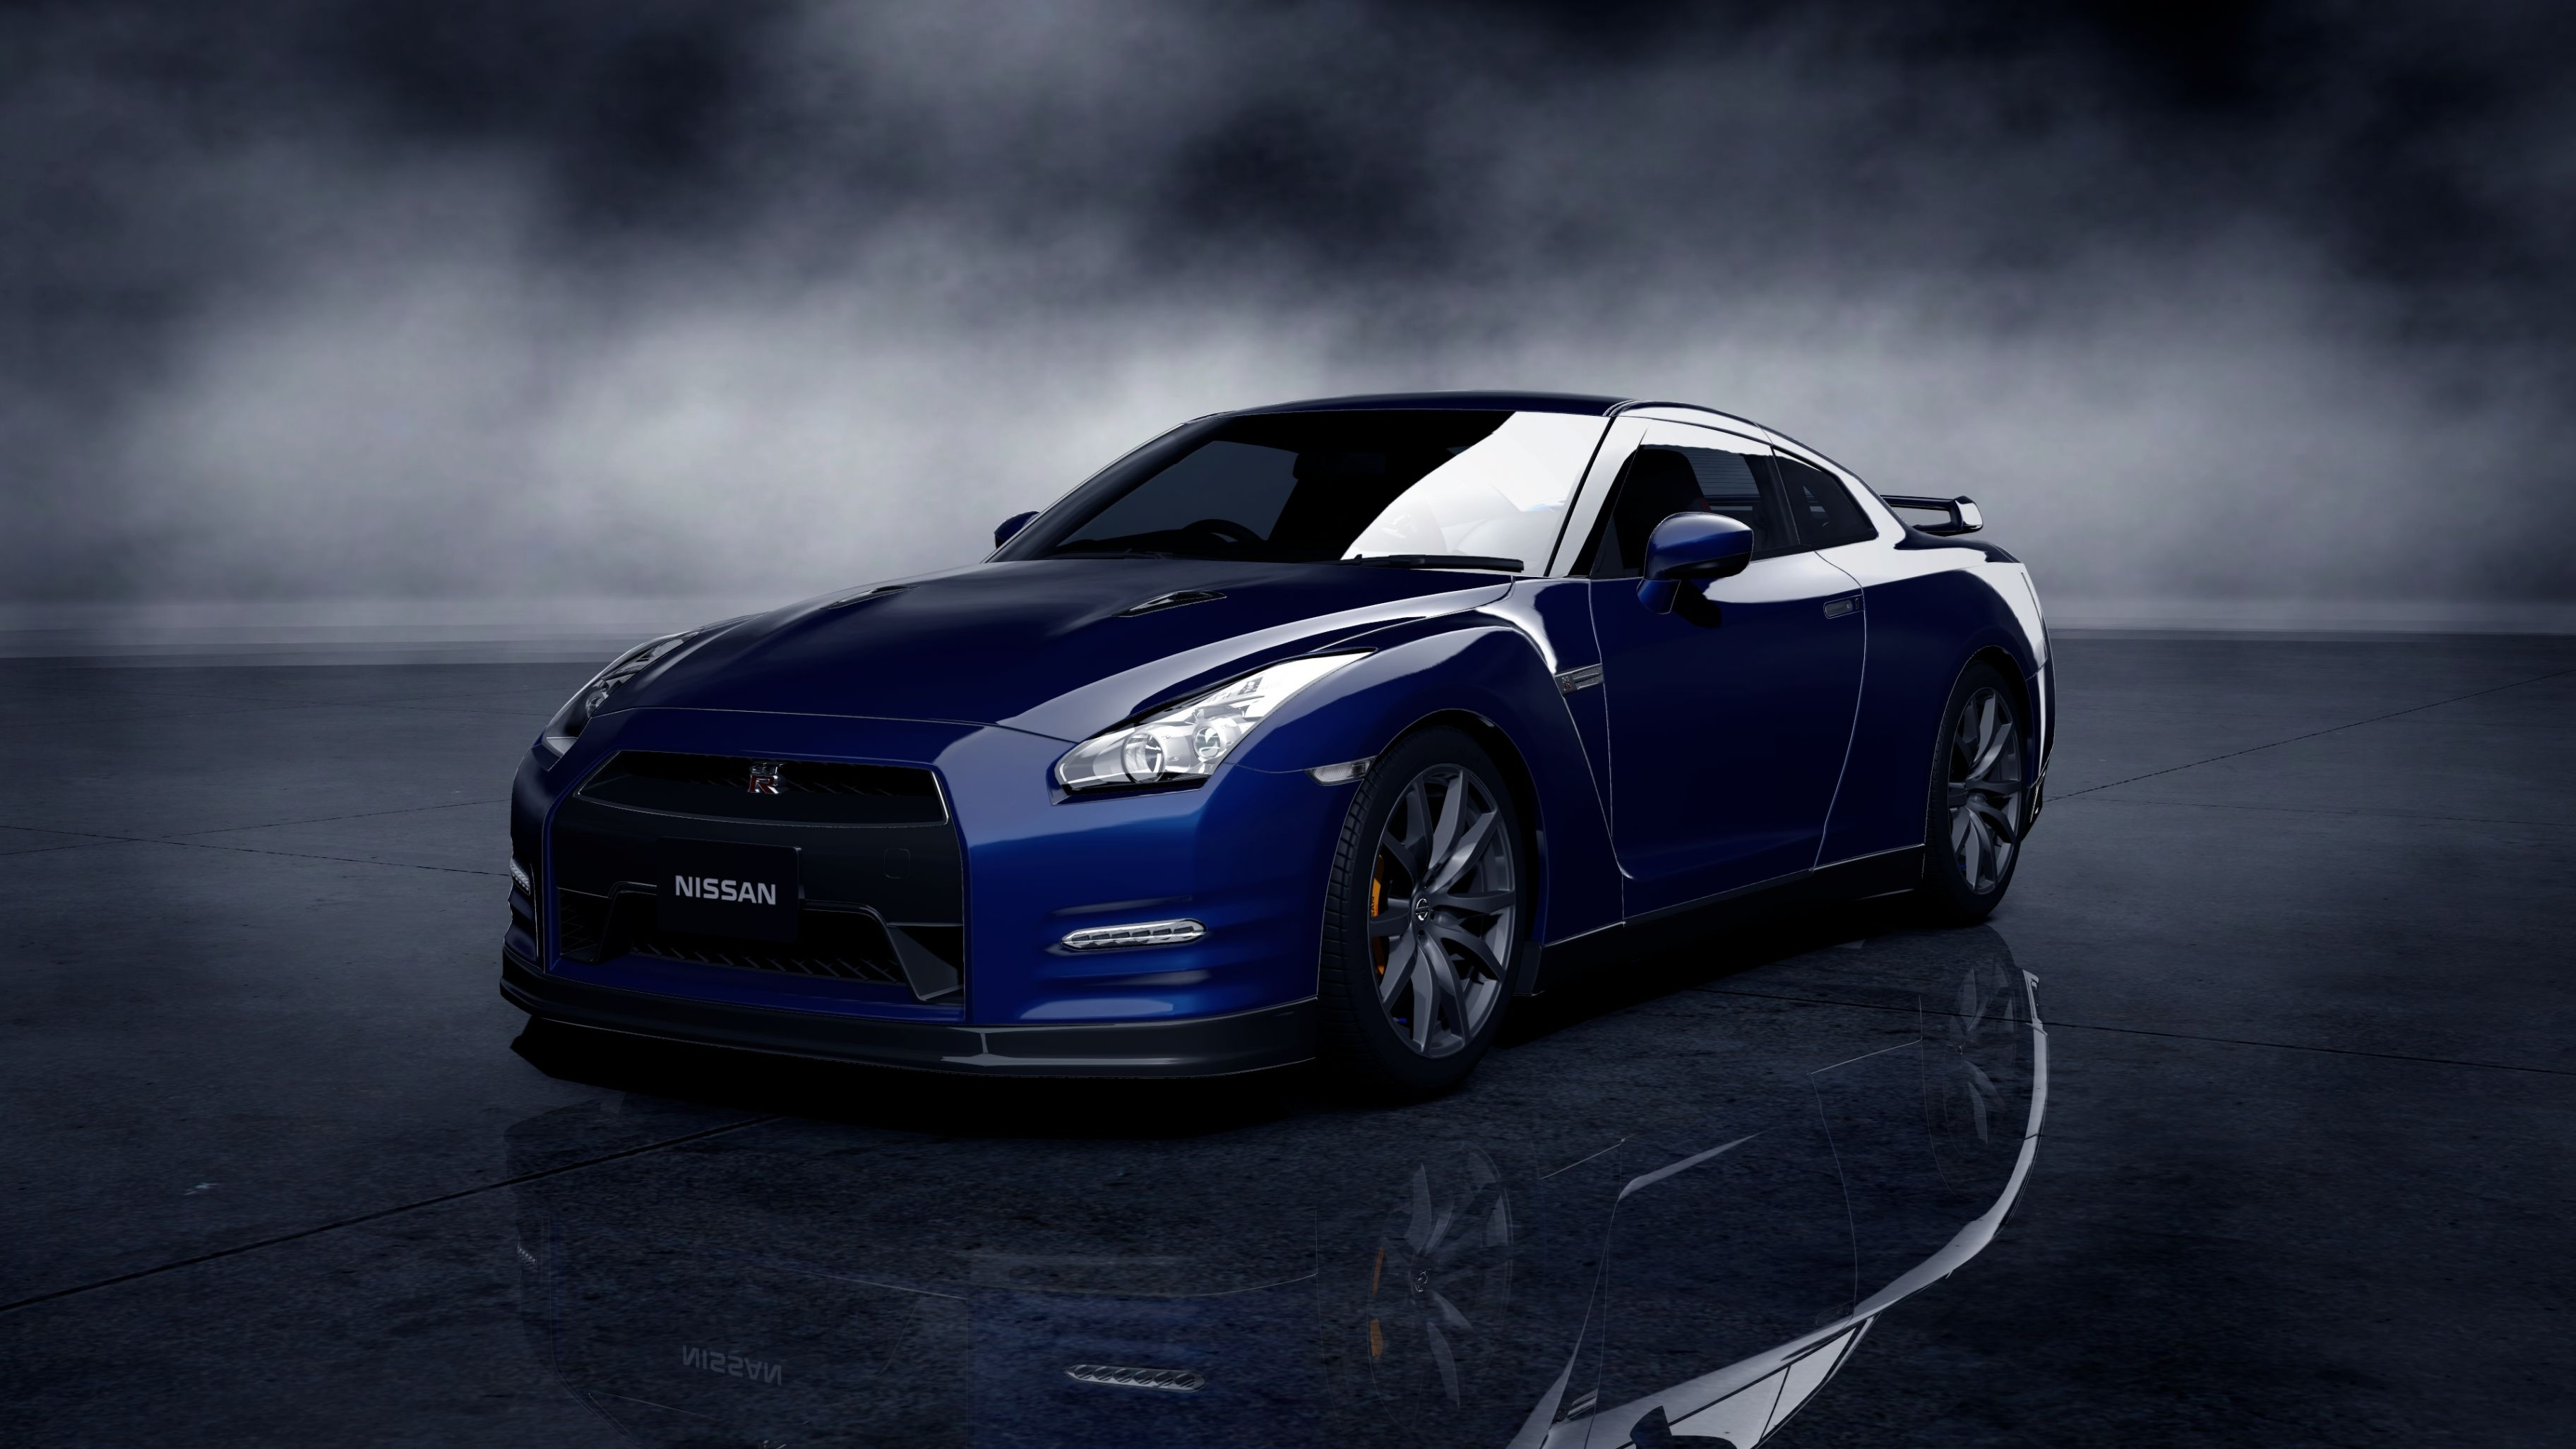 Blue Nissan Gt R Wallpapers Top Free Blue Nissan Gt R Backgrounds Wallpaperaccess